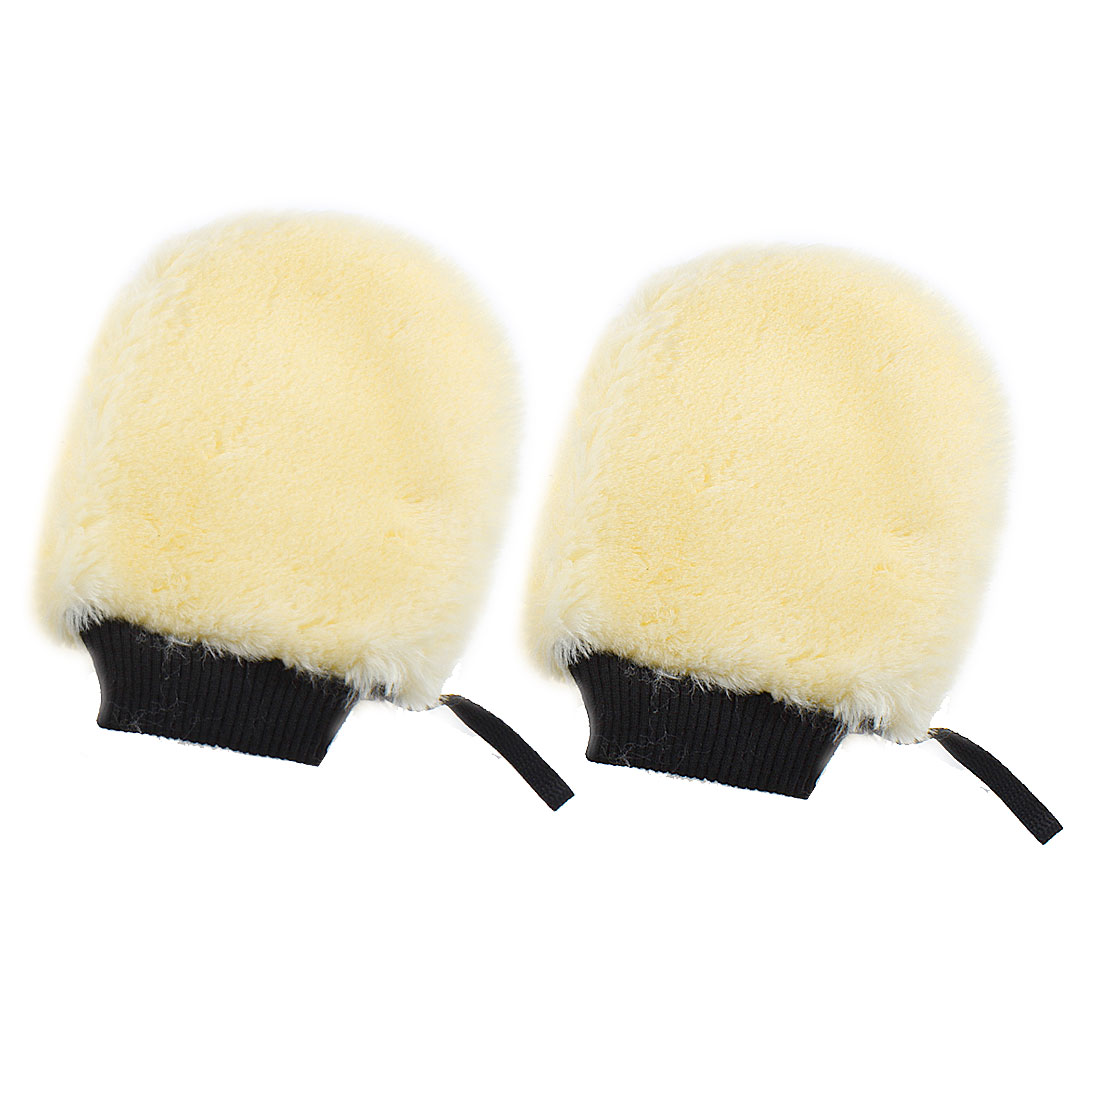 Auto Car Black Elastic Caliber Yellow Plush Cleaning Gloves Mitt Pair